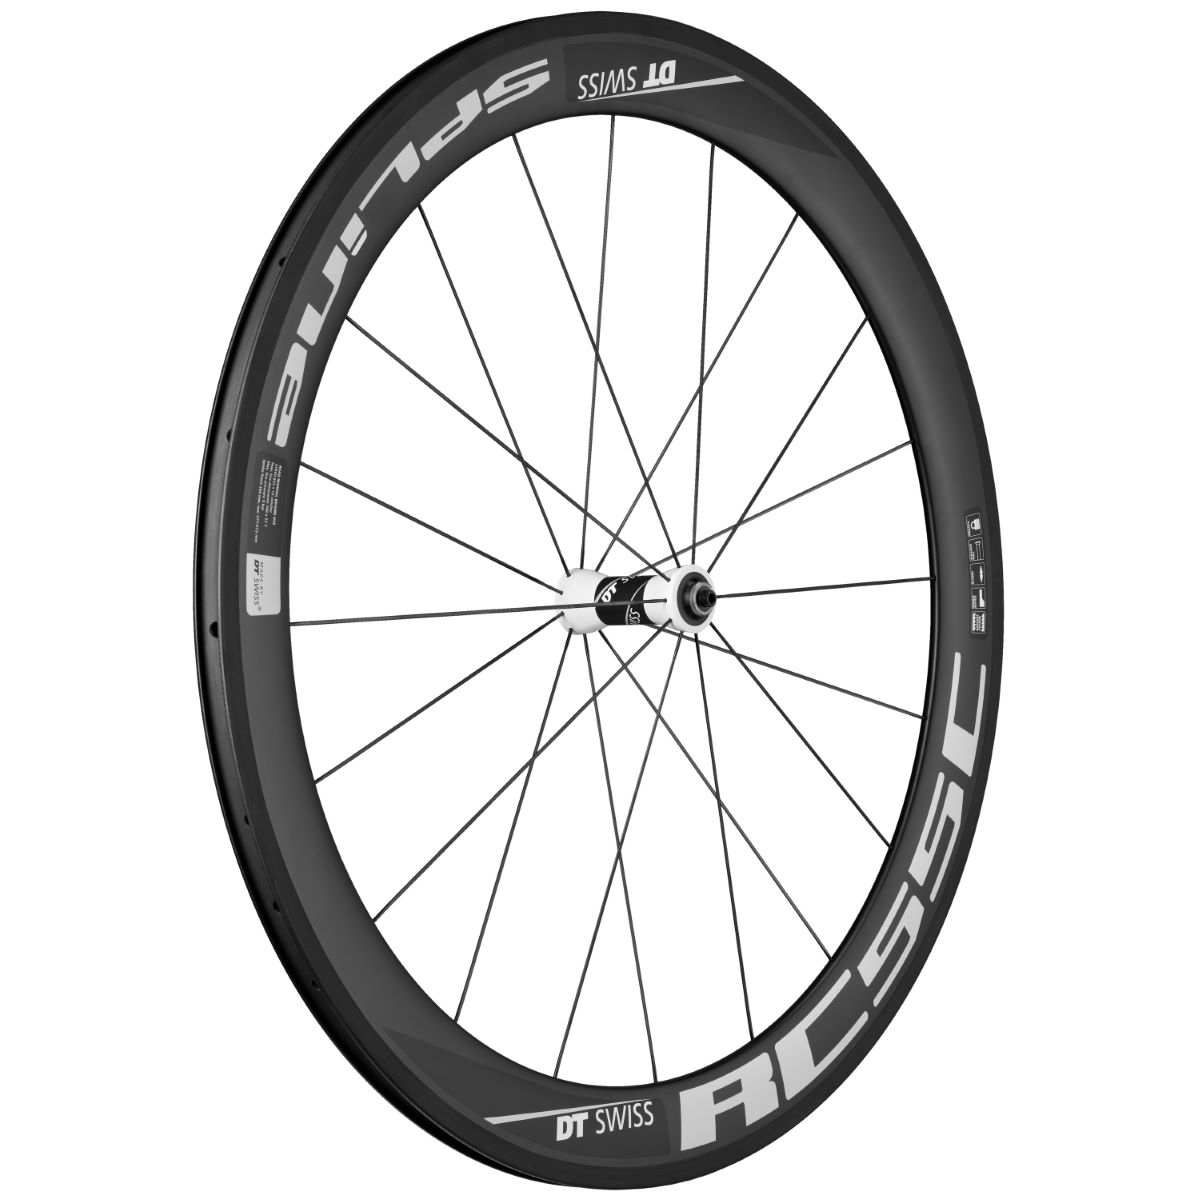 Roue avant DT Swiss RC 55 Spline (carbone) - 700c - Clincher Noir Roues performance